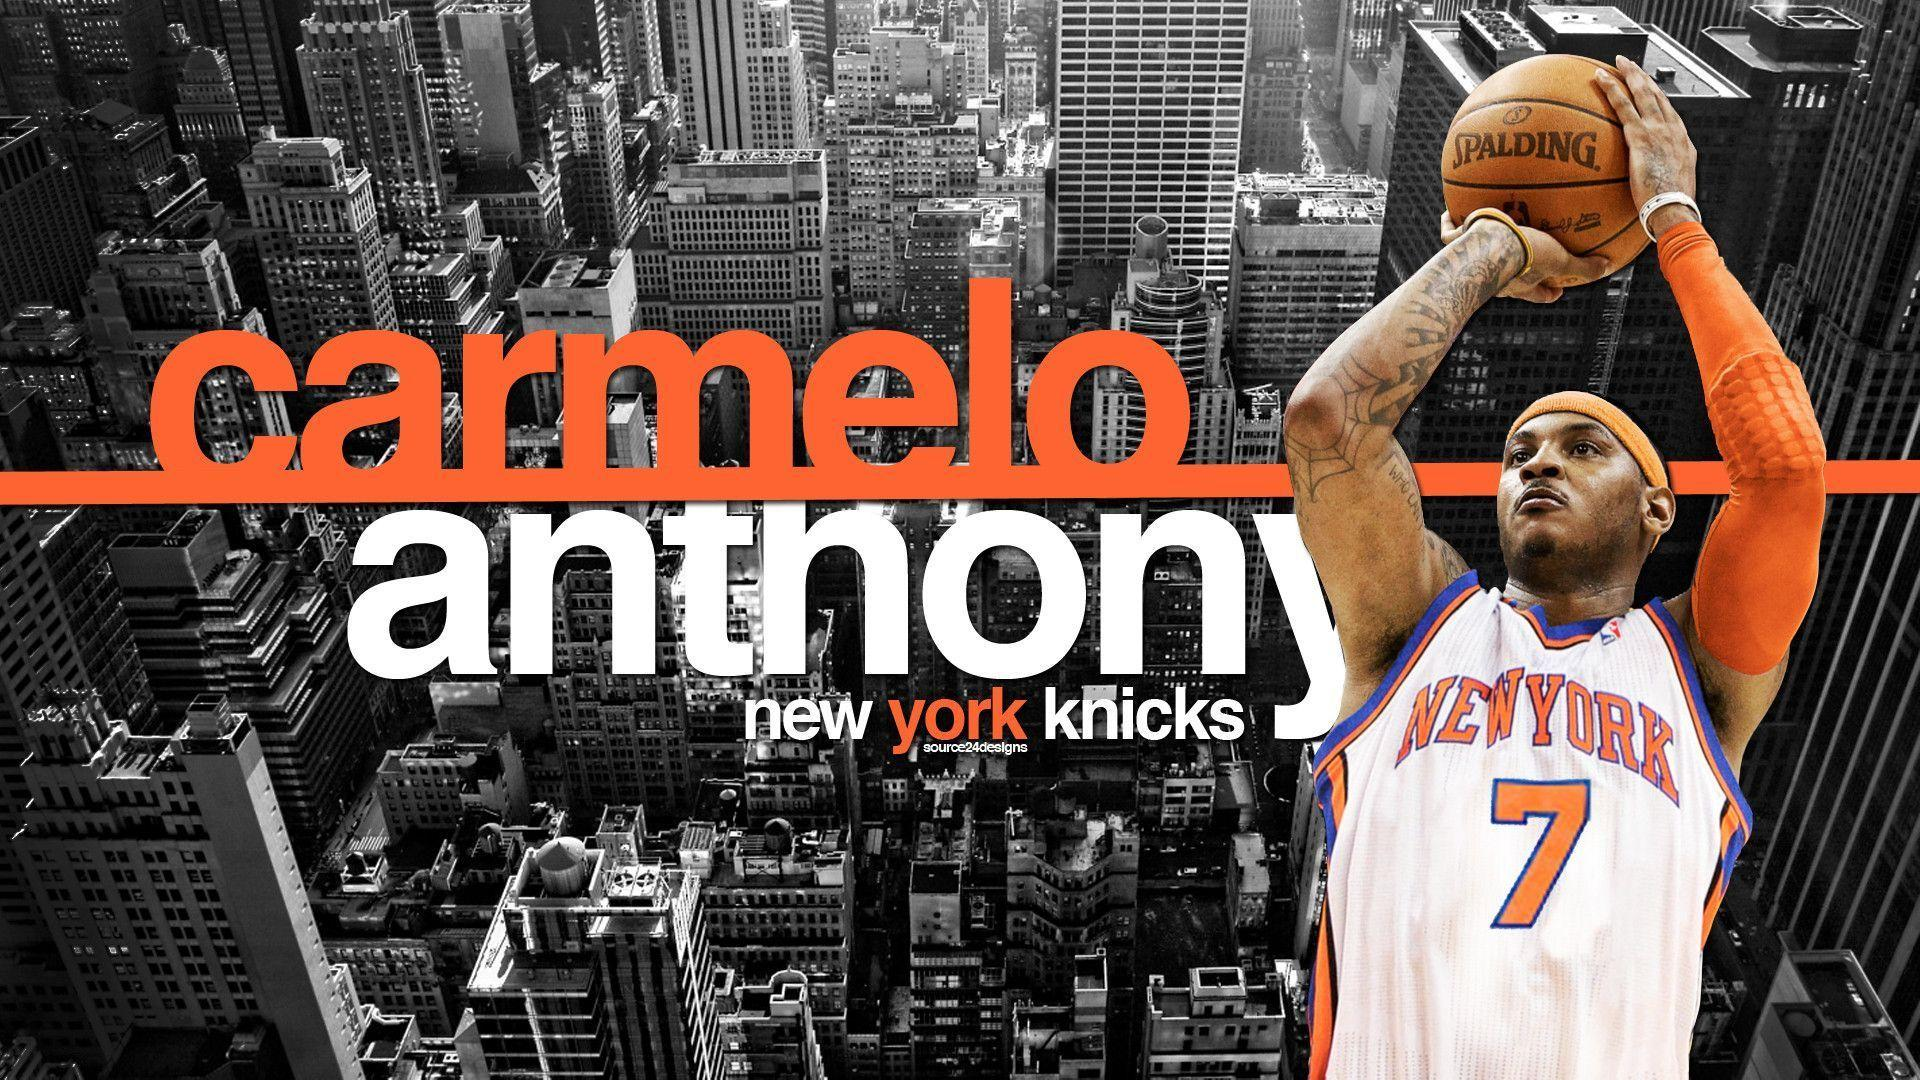 New York Knicks Desktop Backgrounds Hd 25855 Image